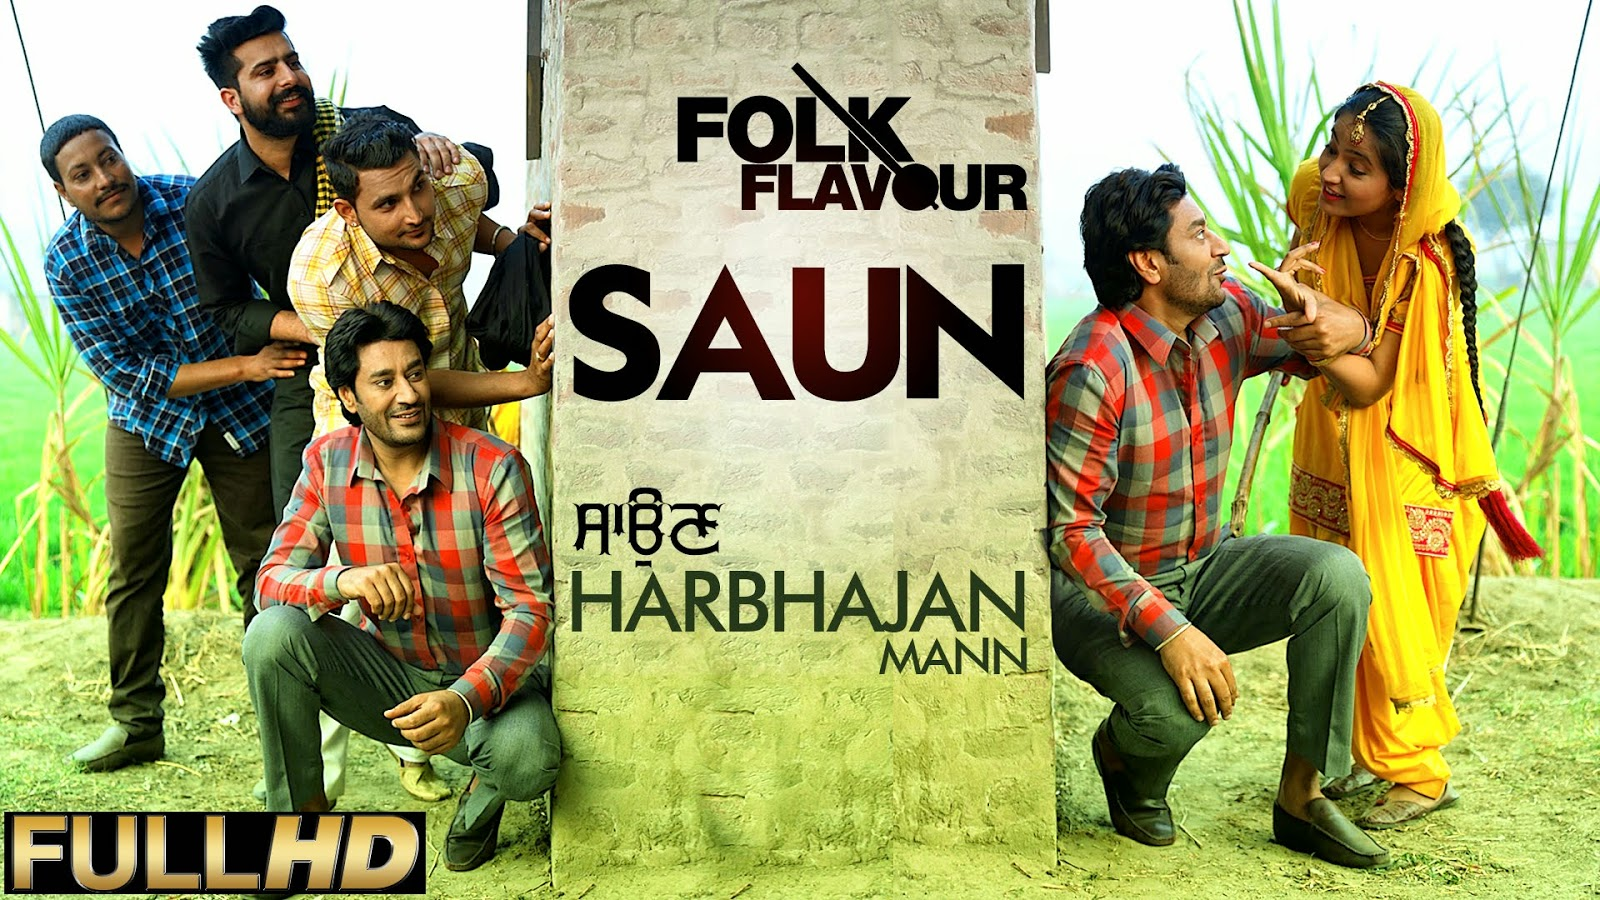 saun de mahine vich mp3 download, lyrics & hd video  harbhajan mann